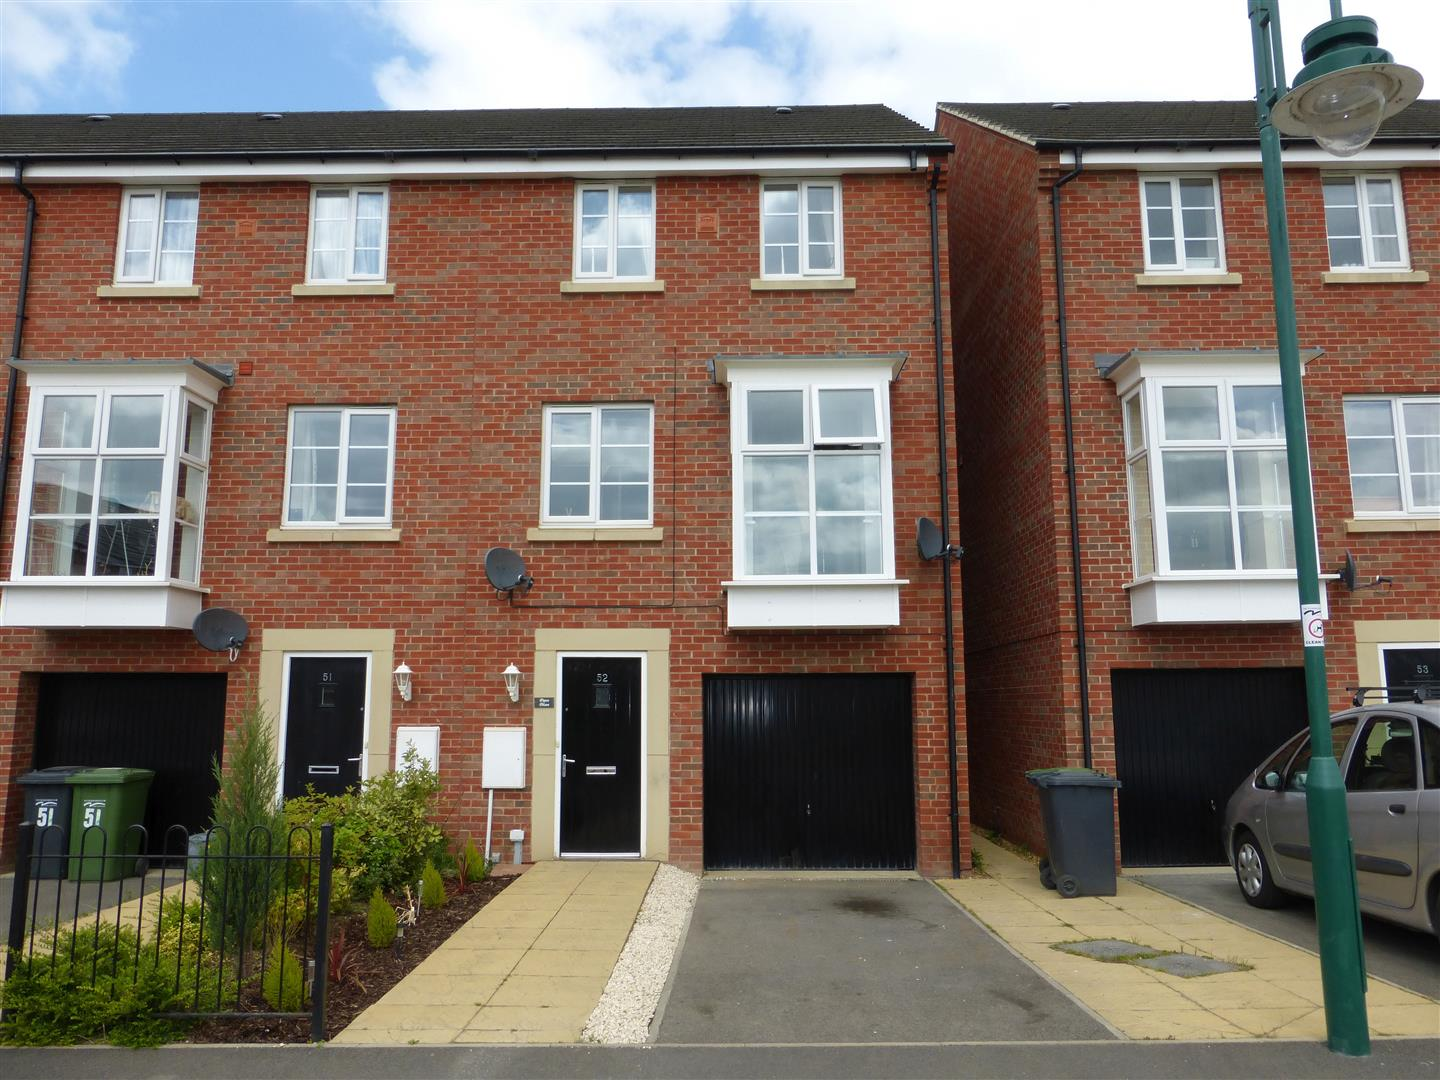 4 Bedroom Property For Sale In Molyneux Square Hampton Vale Peterborough Pe7 Regal Park